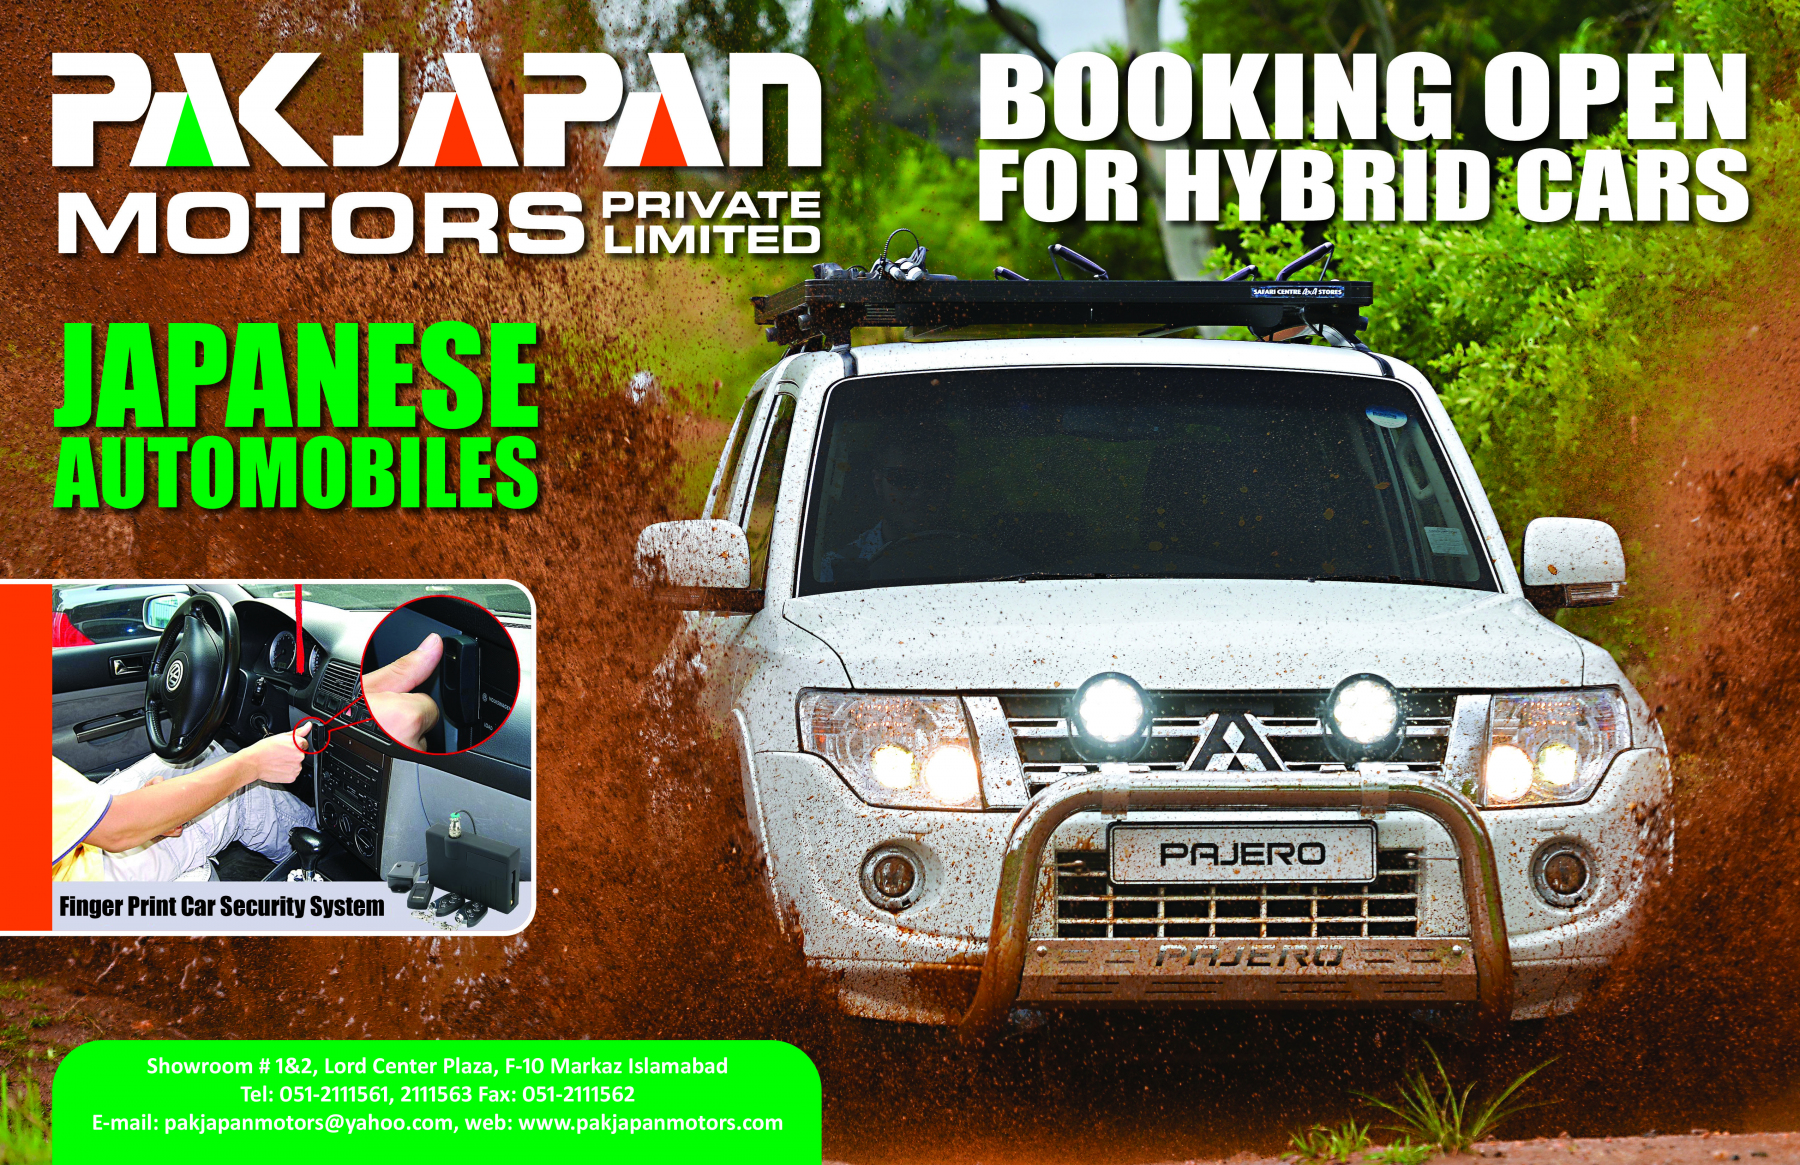 Pak-Japan-Motors-Pvt